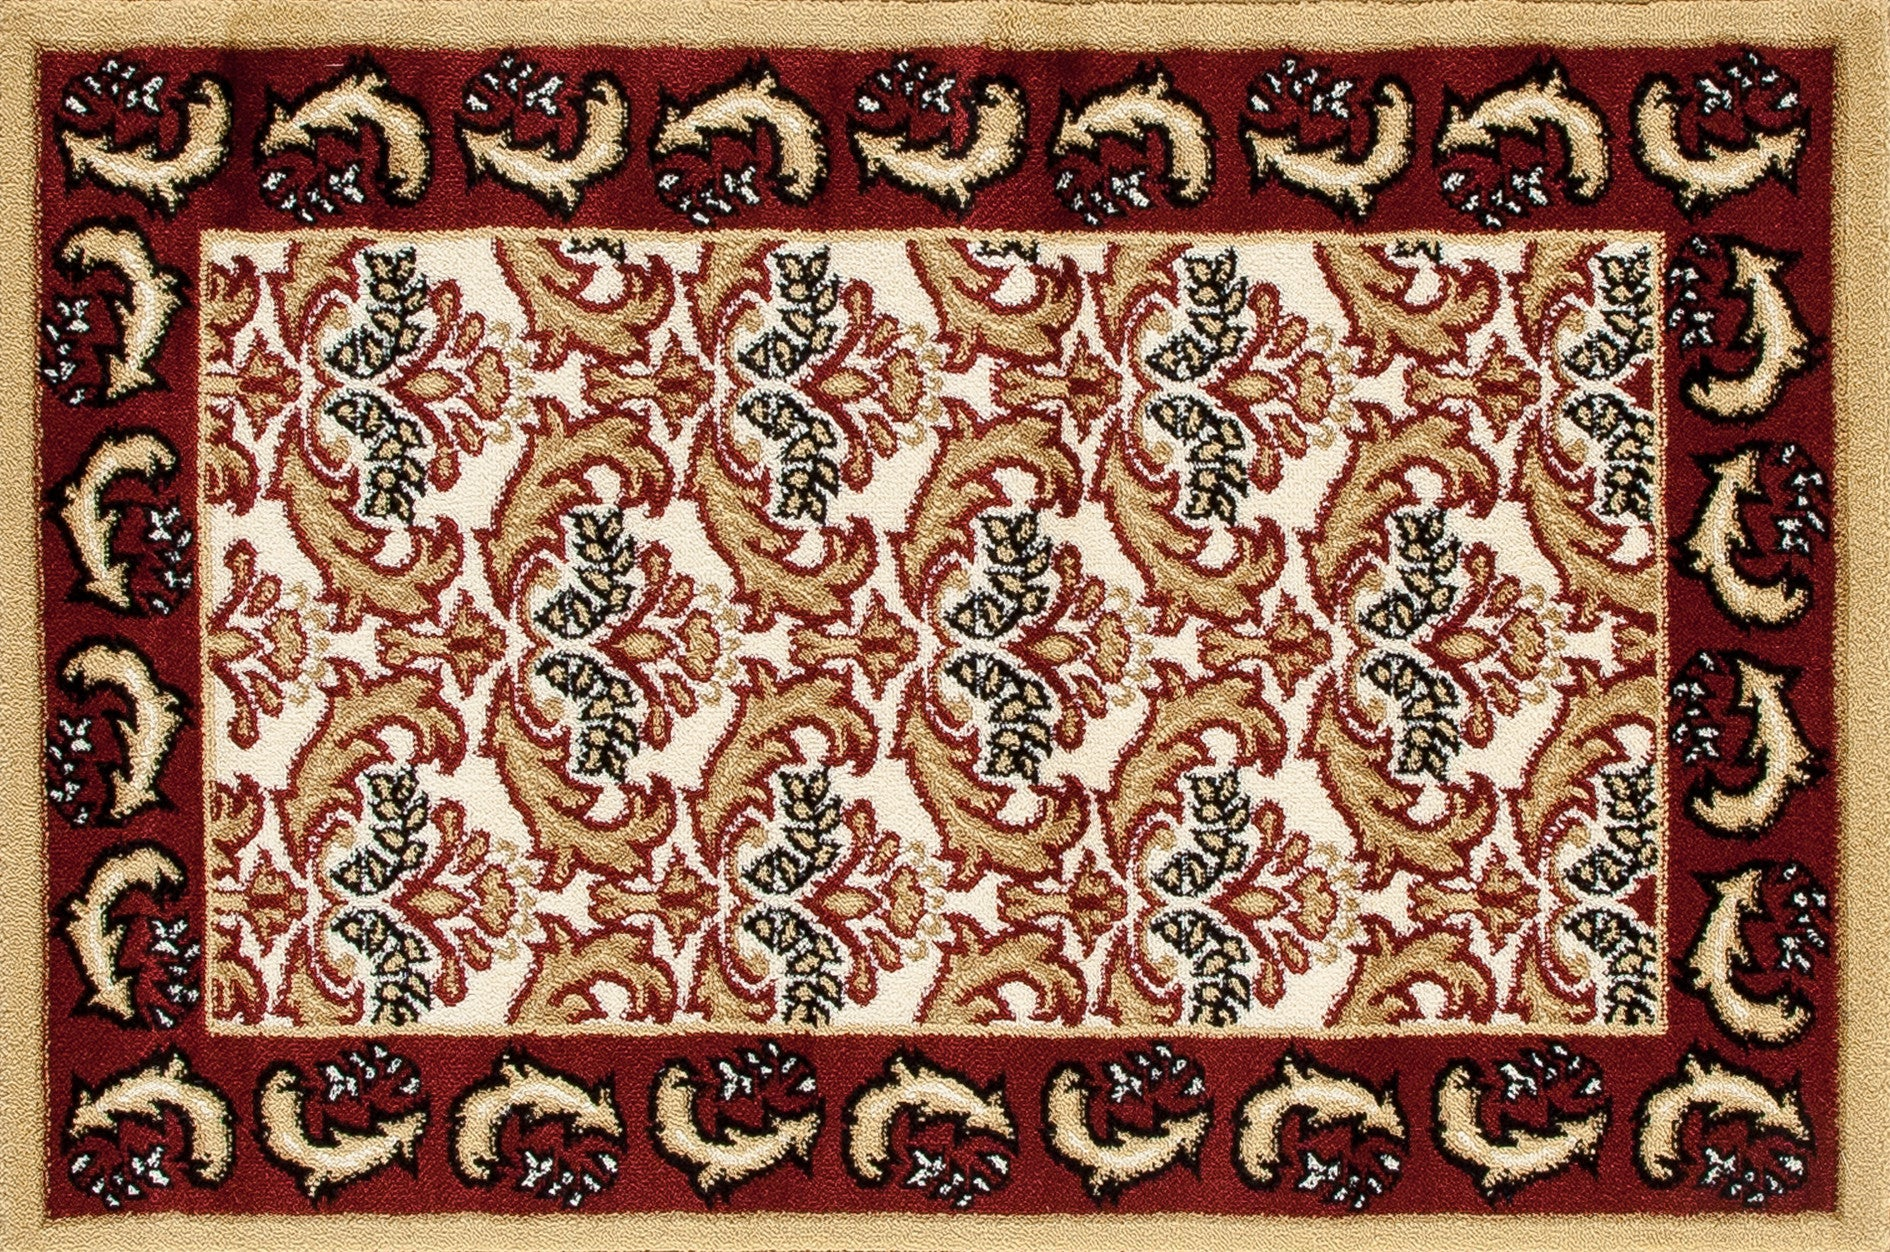 Art Carpet Hearth 2815 Burgundy/Dark Beige Area Rug main image